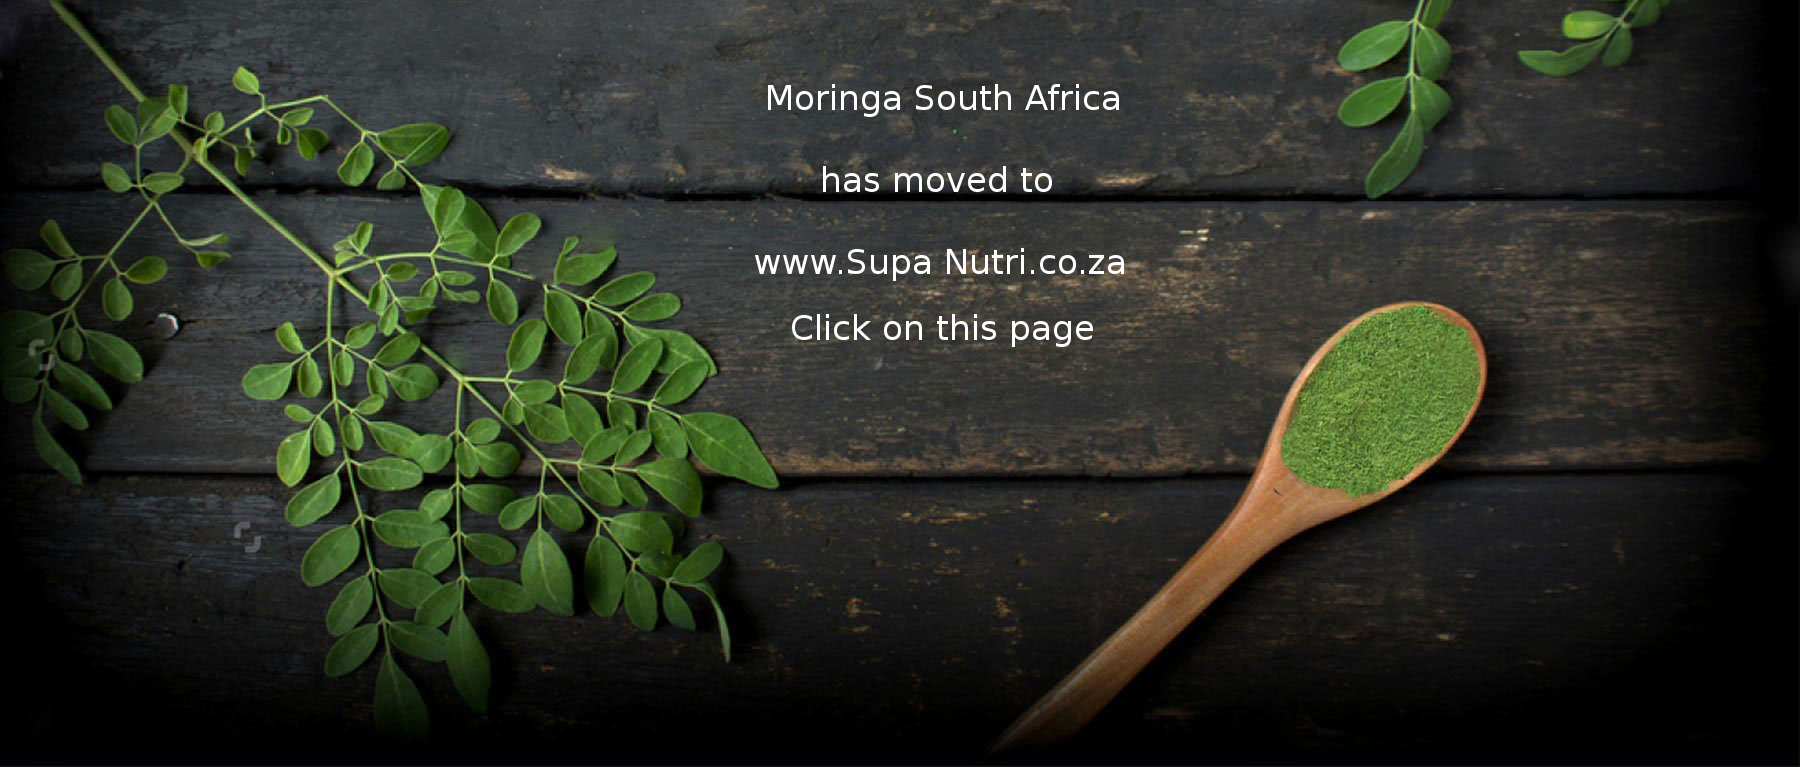 Moringa South Africa Supa Nutri